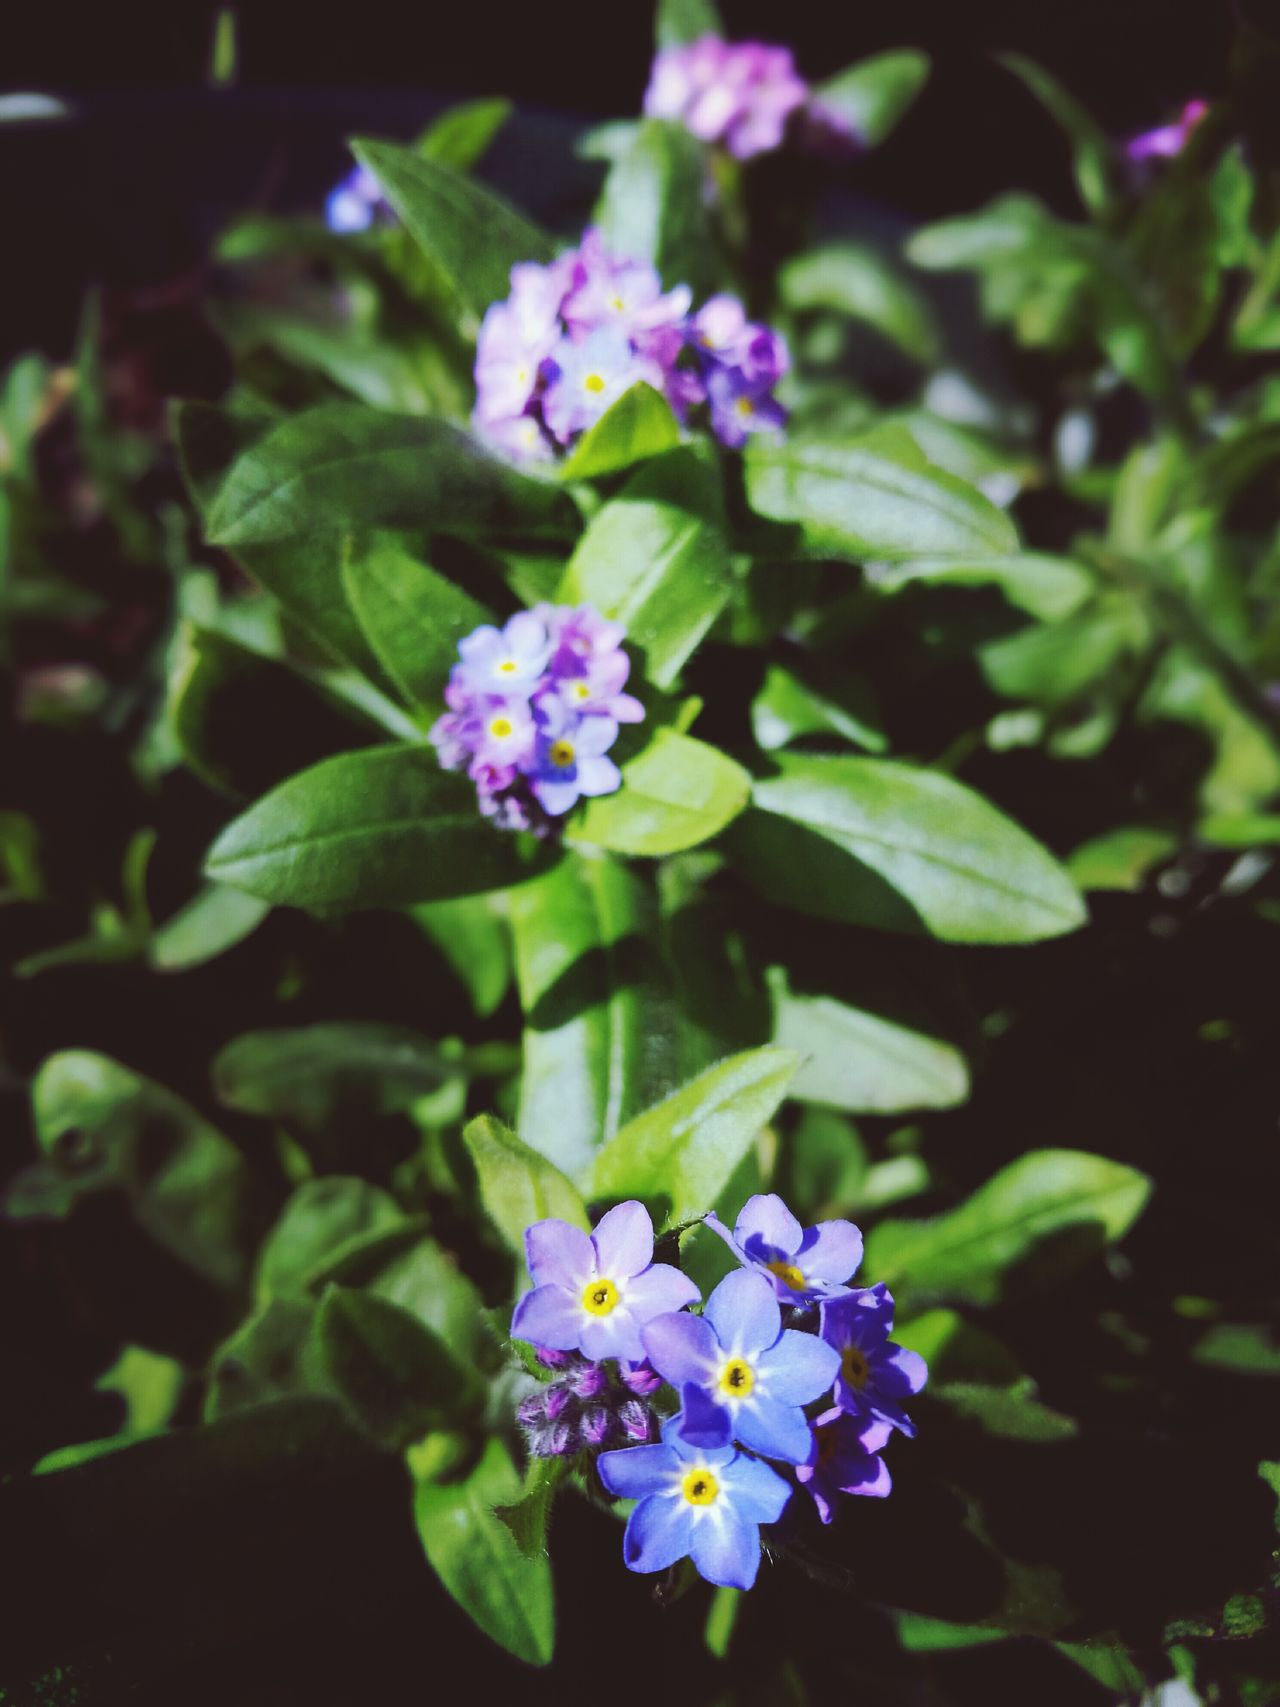 Flower Fragility Freshness Nature Plant Beauty In Nature Growth Flower Head Petal Blooming Leaf Day Close-up No People Outdoors EyeEm Nature Lover Forget Me Not Delicate Blueflower